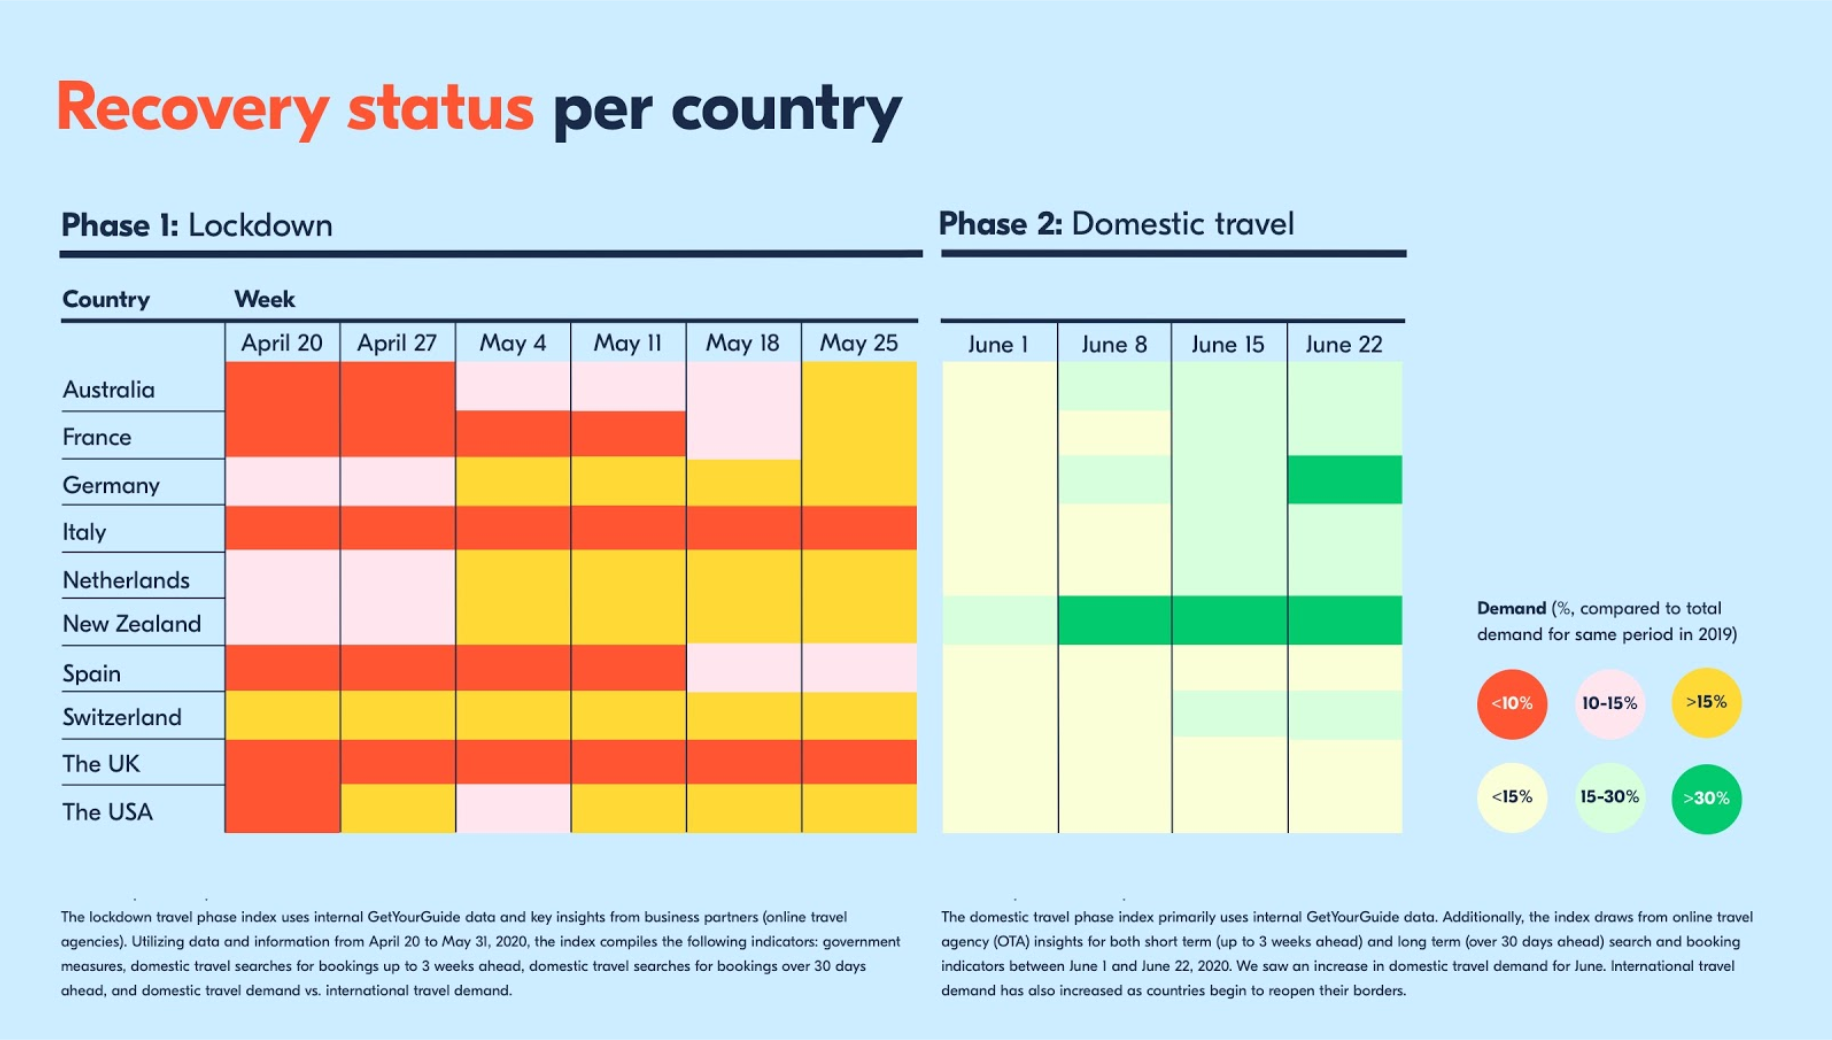 Recovery Status per country (June 22)